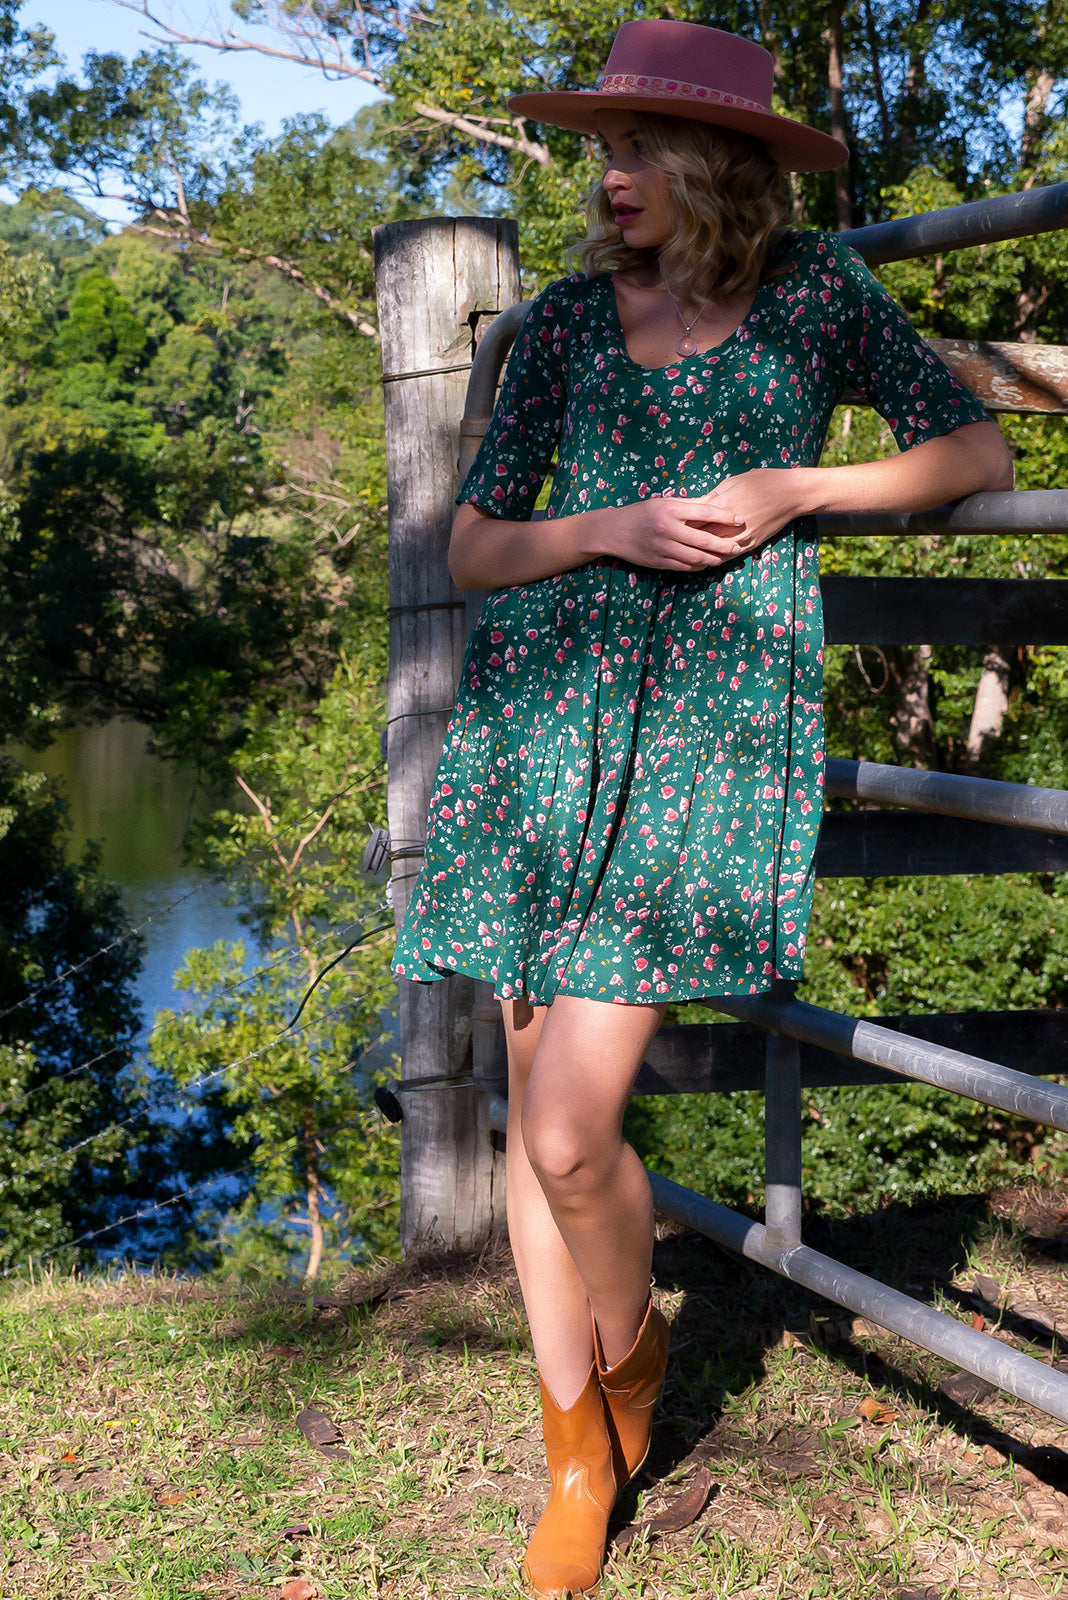 Lulu Bell Green Rosebuds Mini Dress features side pockets, tiered skirt and crinkle textured woven 100% viscose in rich green base with sweet ditzy floral print.